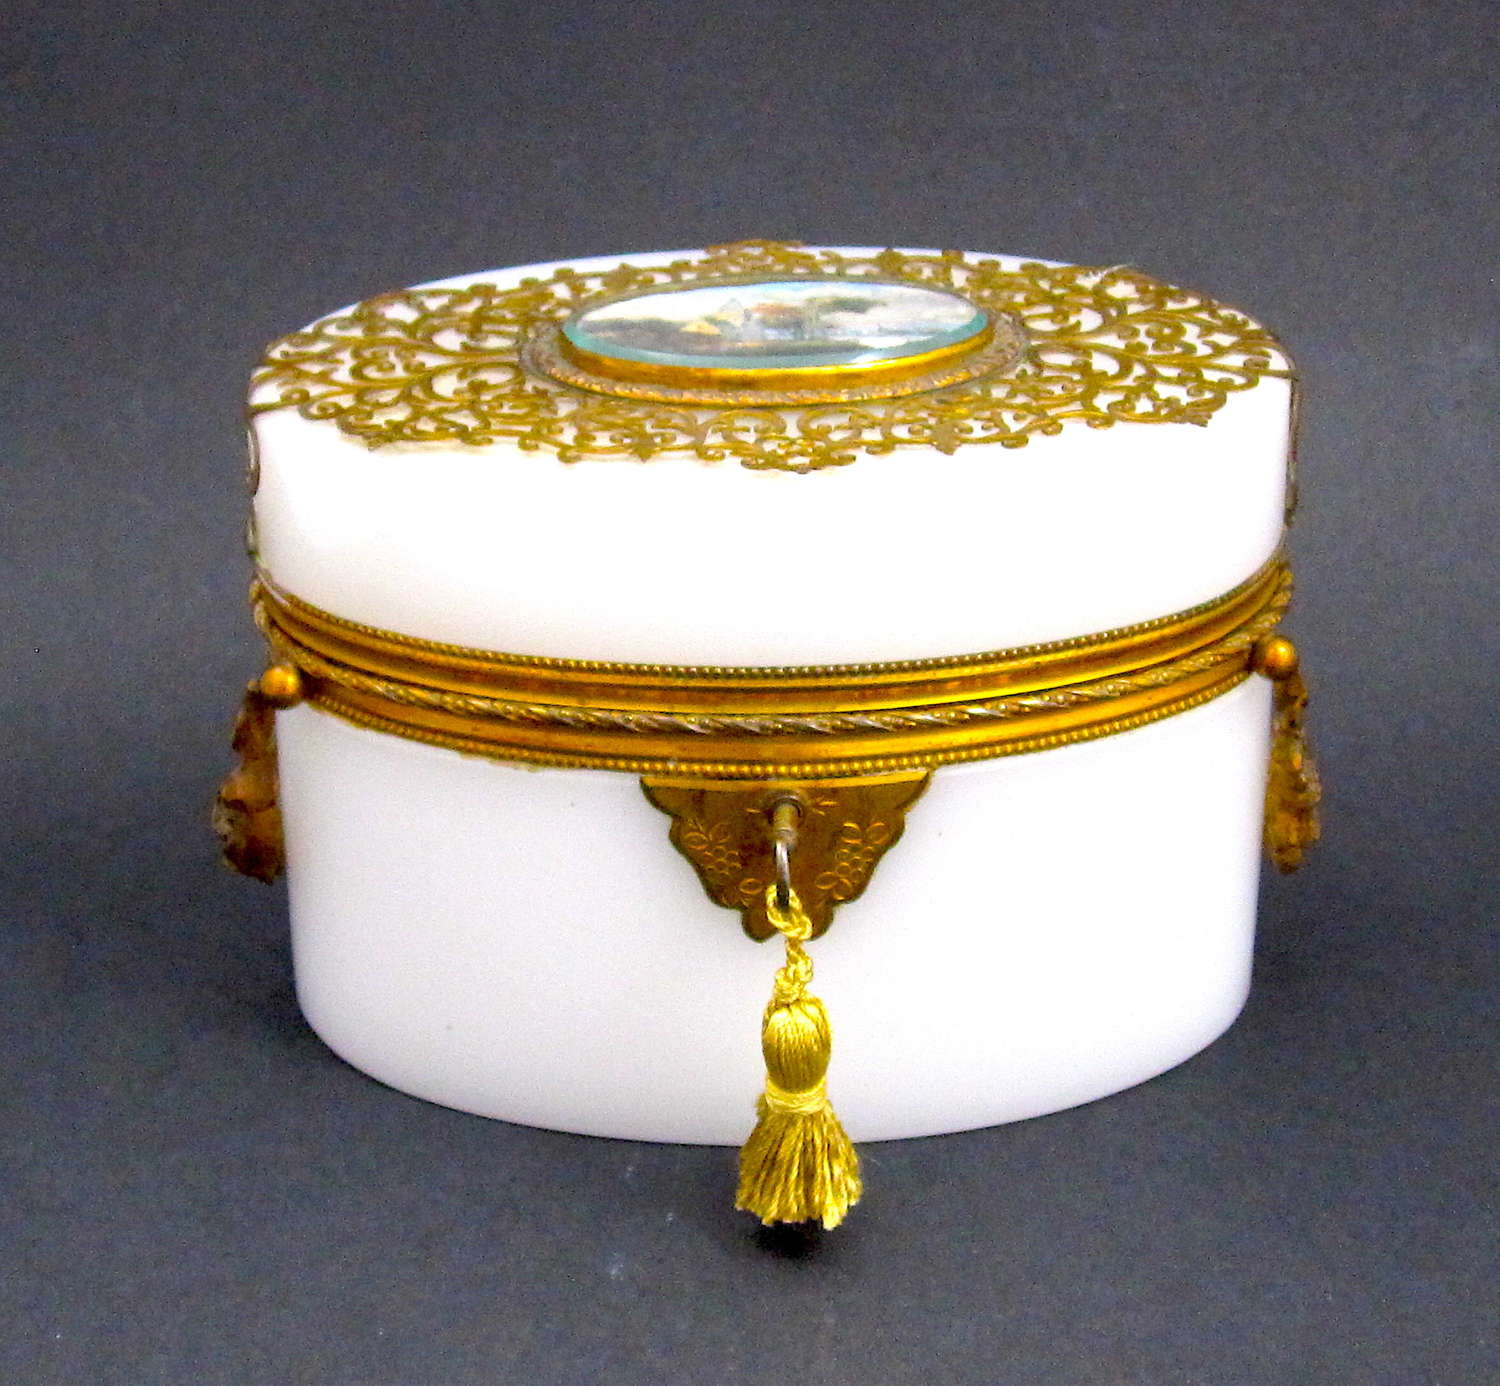 A Large Antique French Oval White Opaline Glass Casket